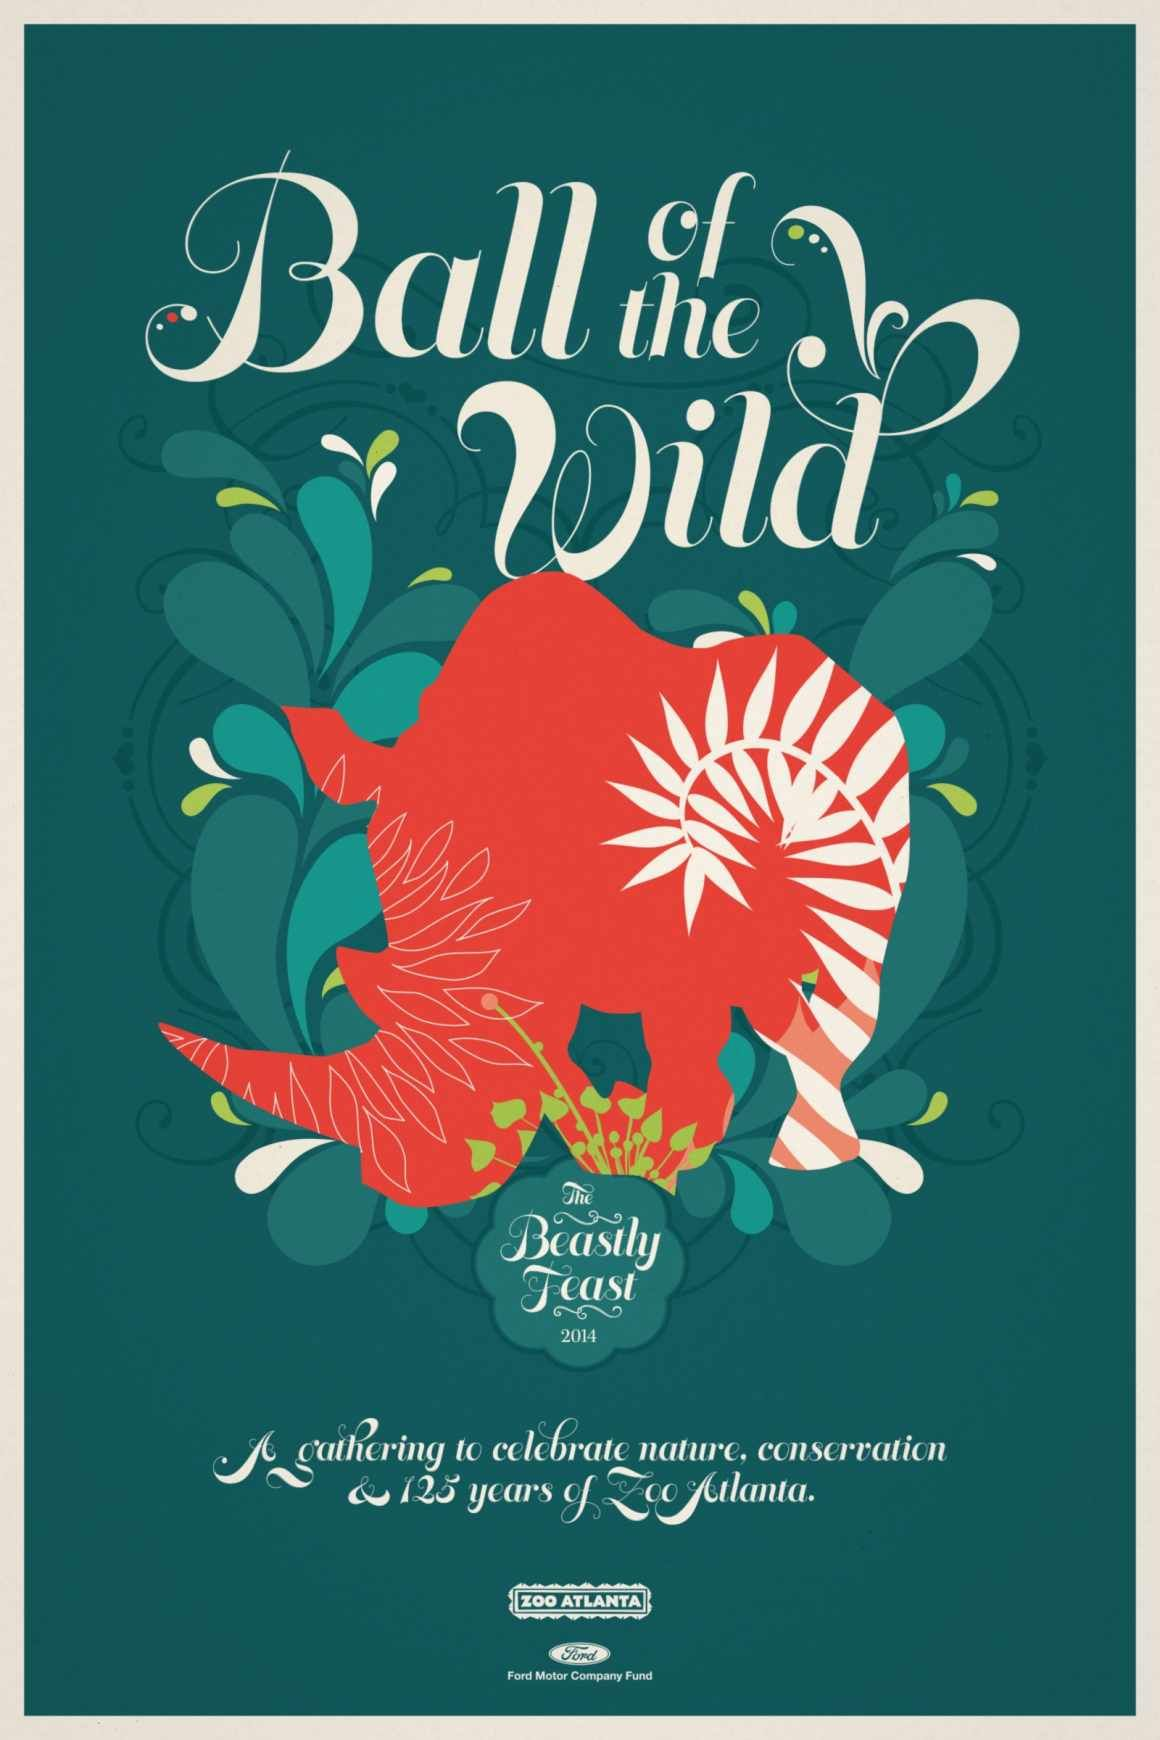 Zoo Atlanta Beastly Feast Rhino Ball Of The Wild A Gathering To Celebrate Nature Conserva Atlanta Zoo Graphic Design Illustration Graphic Design Typography